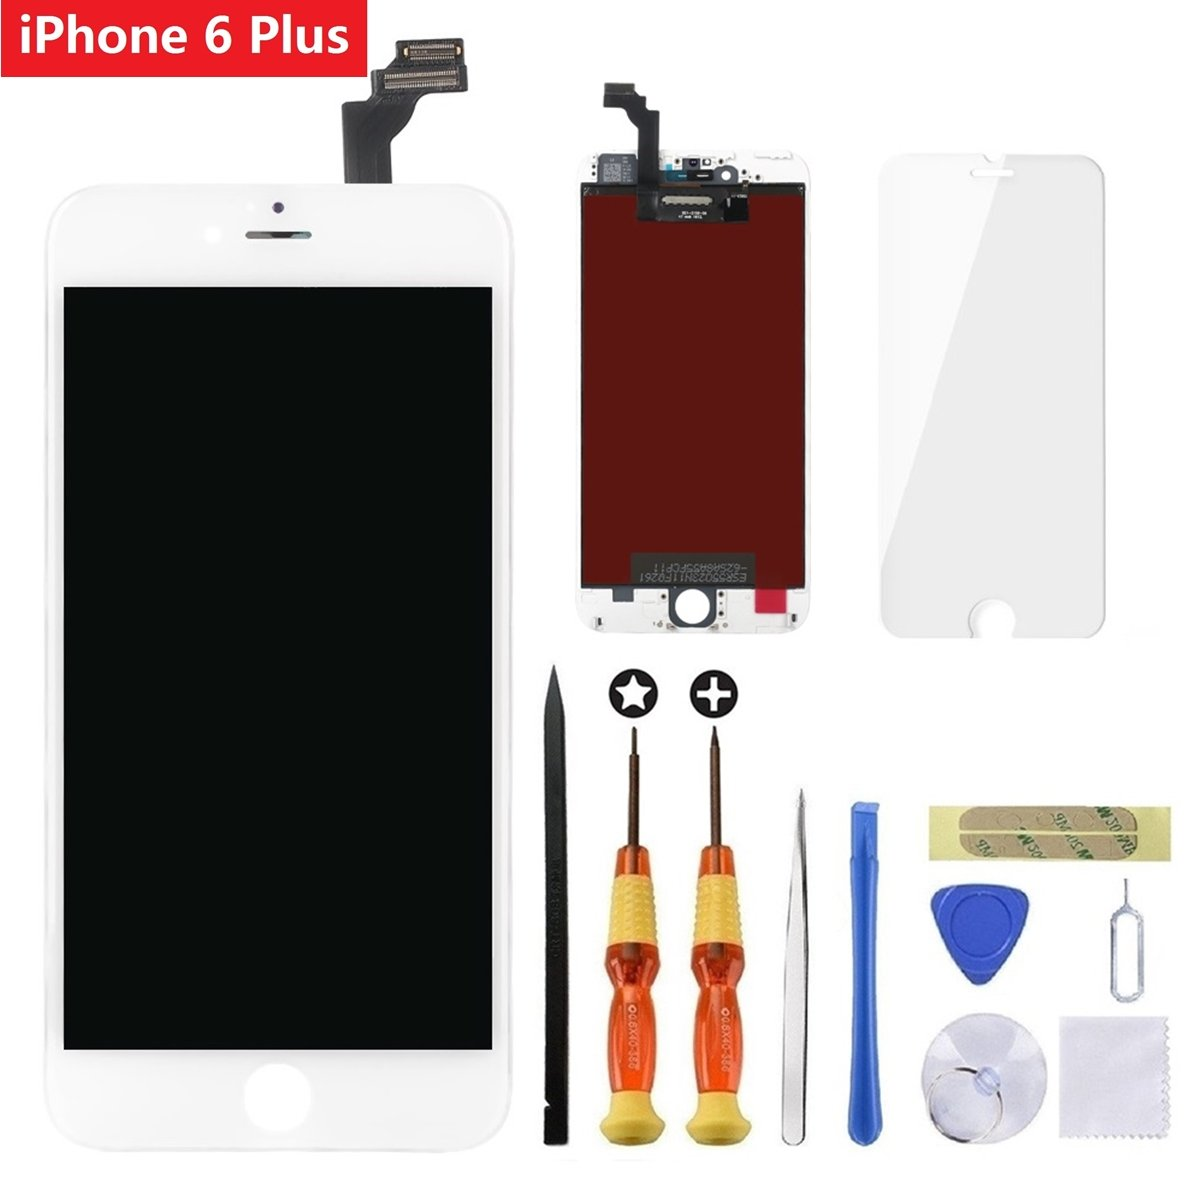 for White iPhone 6 Plus 5.5 inch Screen Replacement Retian LCD Touch Screen Digitizer Fram Assembly Full Set with Tempered Glass Screen Protector + Tools + Instructions by Brinonac